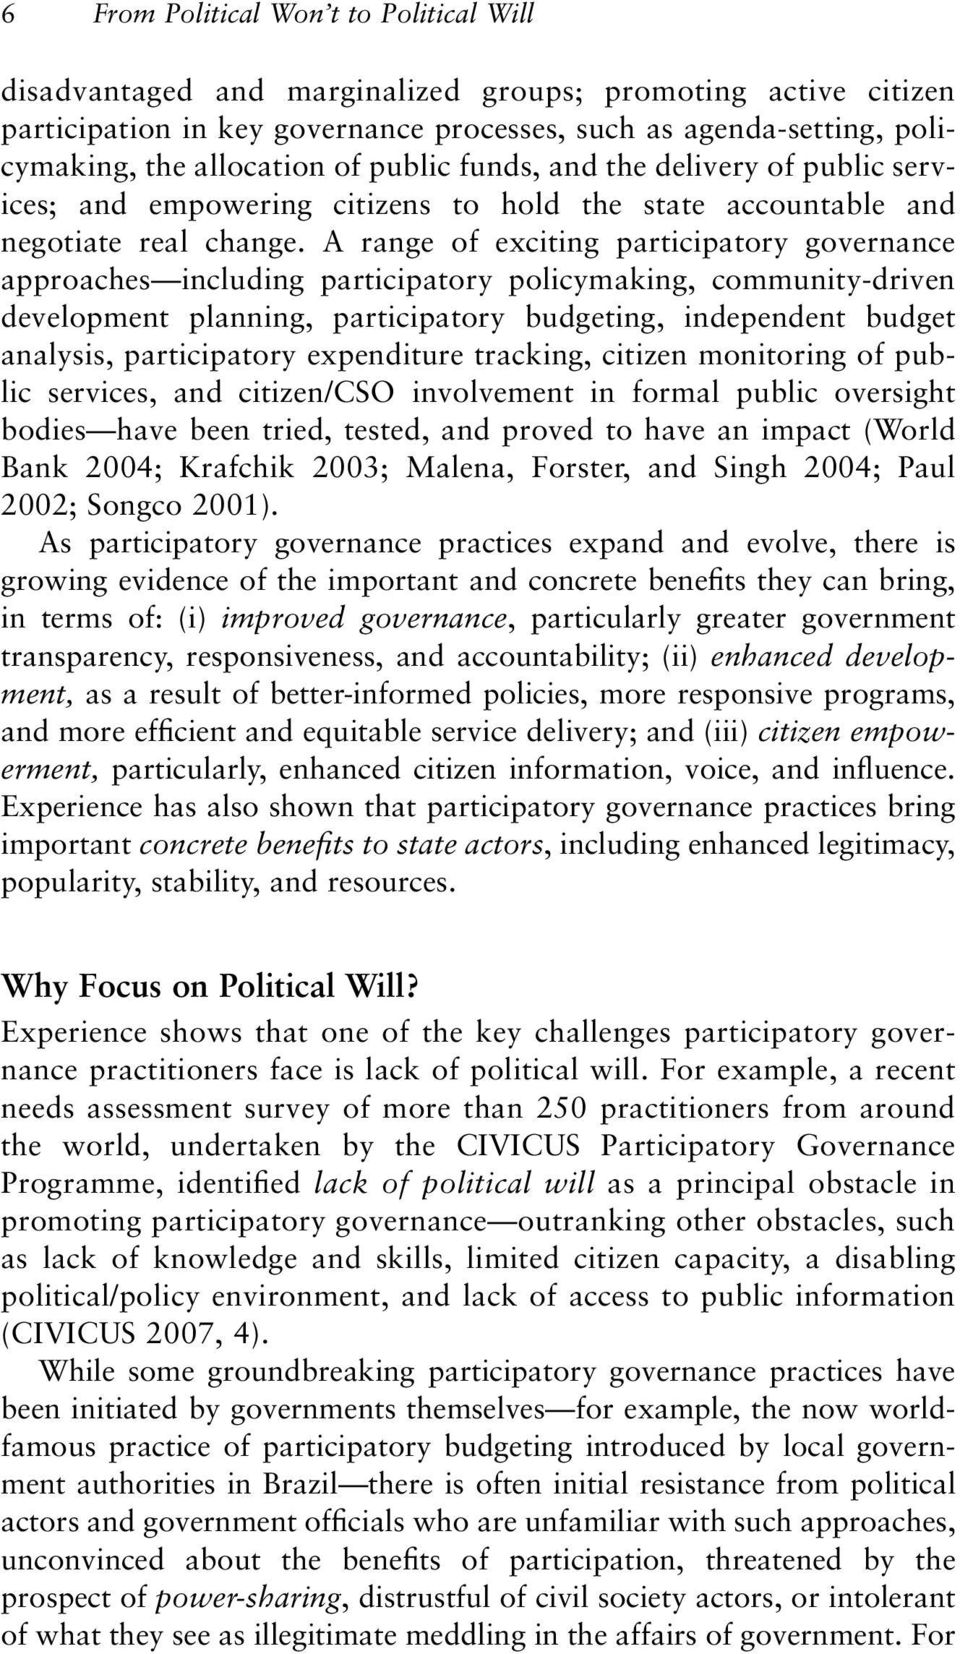 A range of exciting participatory governance approaches including participatory policymaking, community-driven development planning, participatory budgeting, independent budget analysis,